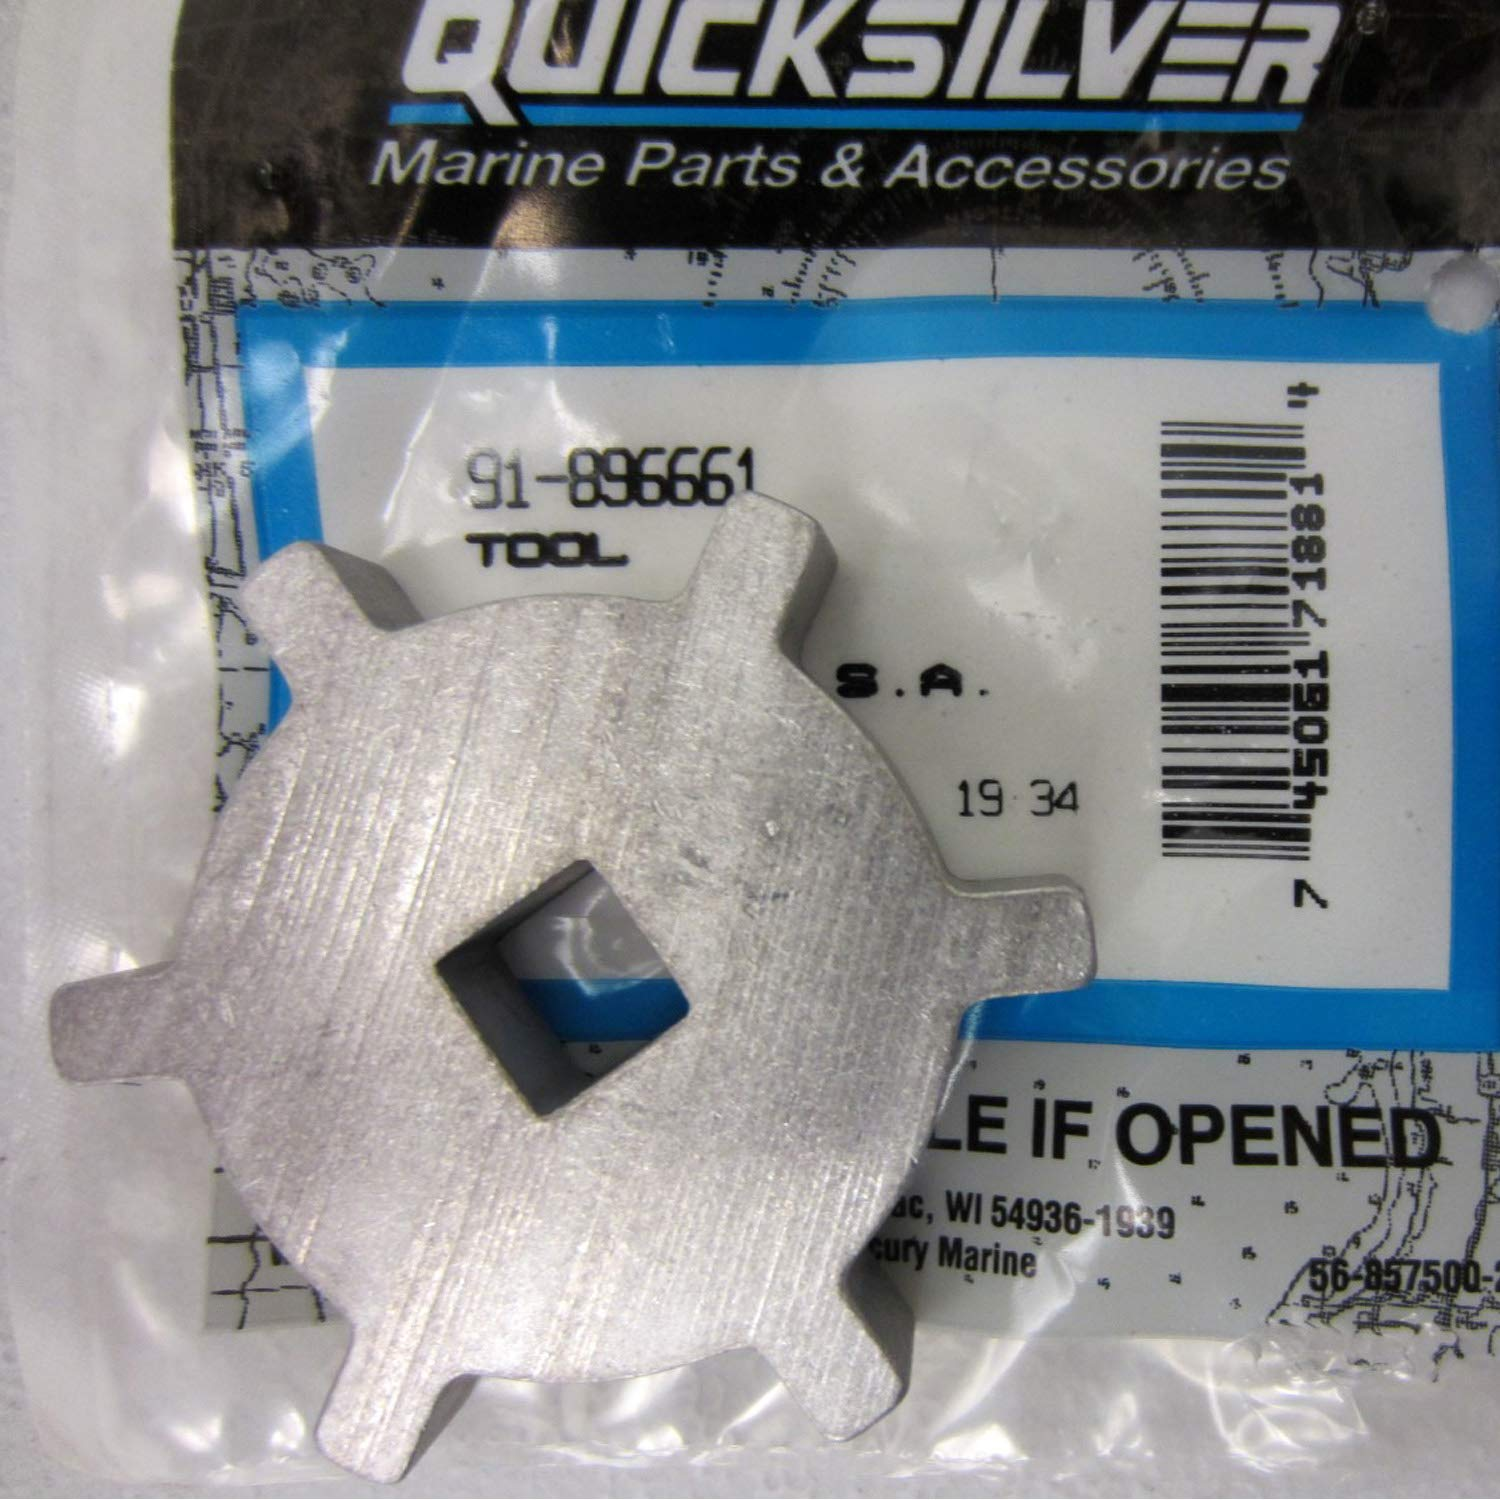 Mercury//Quicksilver Fuel Filter Tool